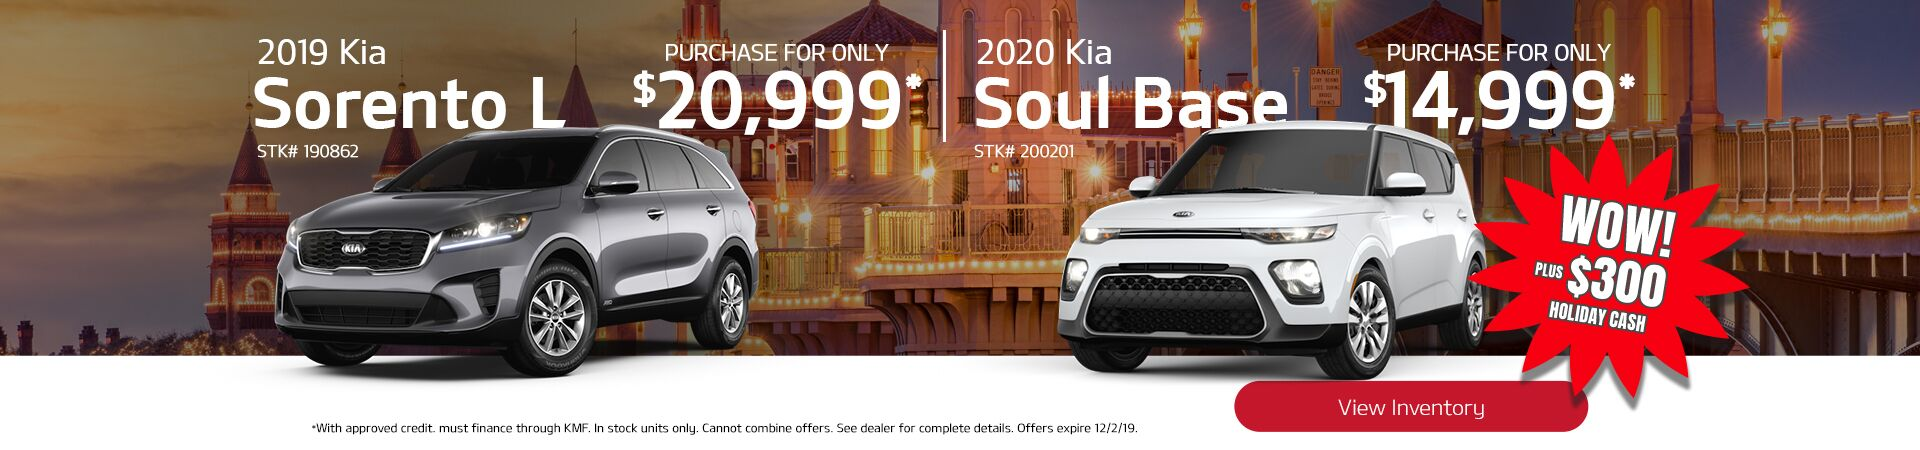 2019 Sorento and 2020 Soul plus $300 holiday cash